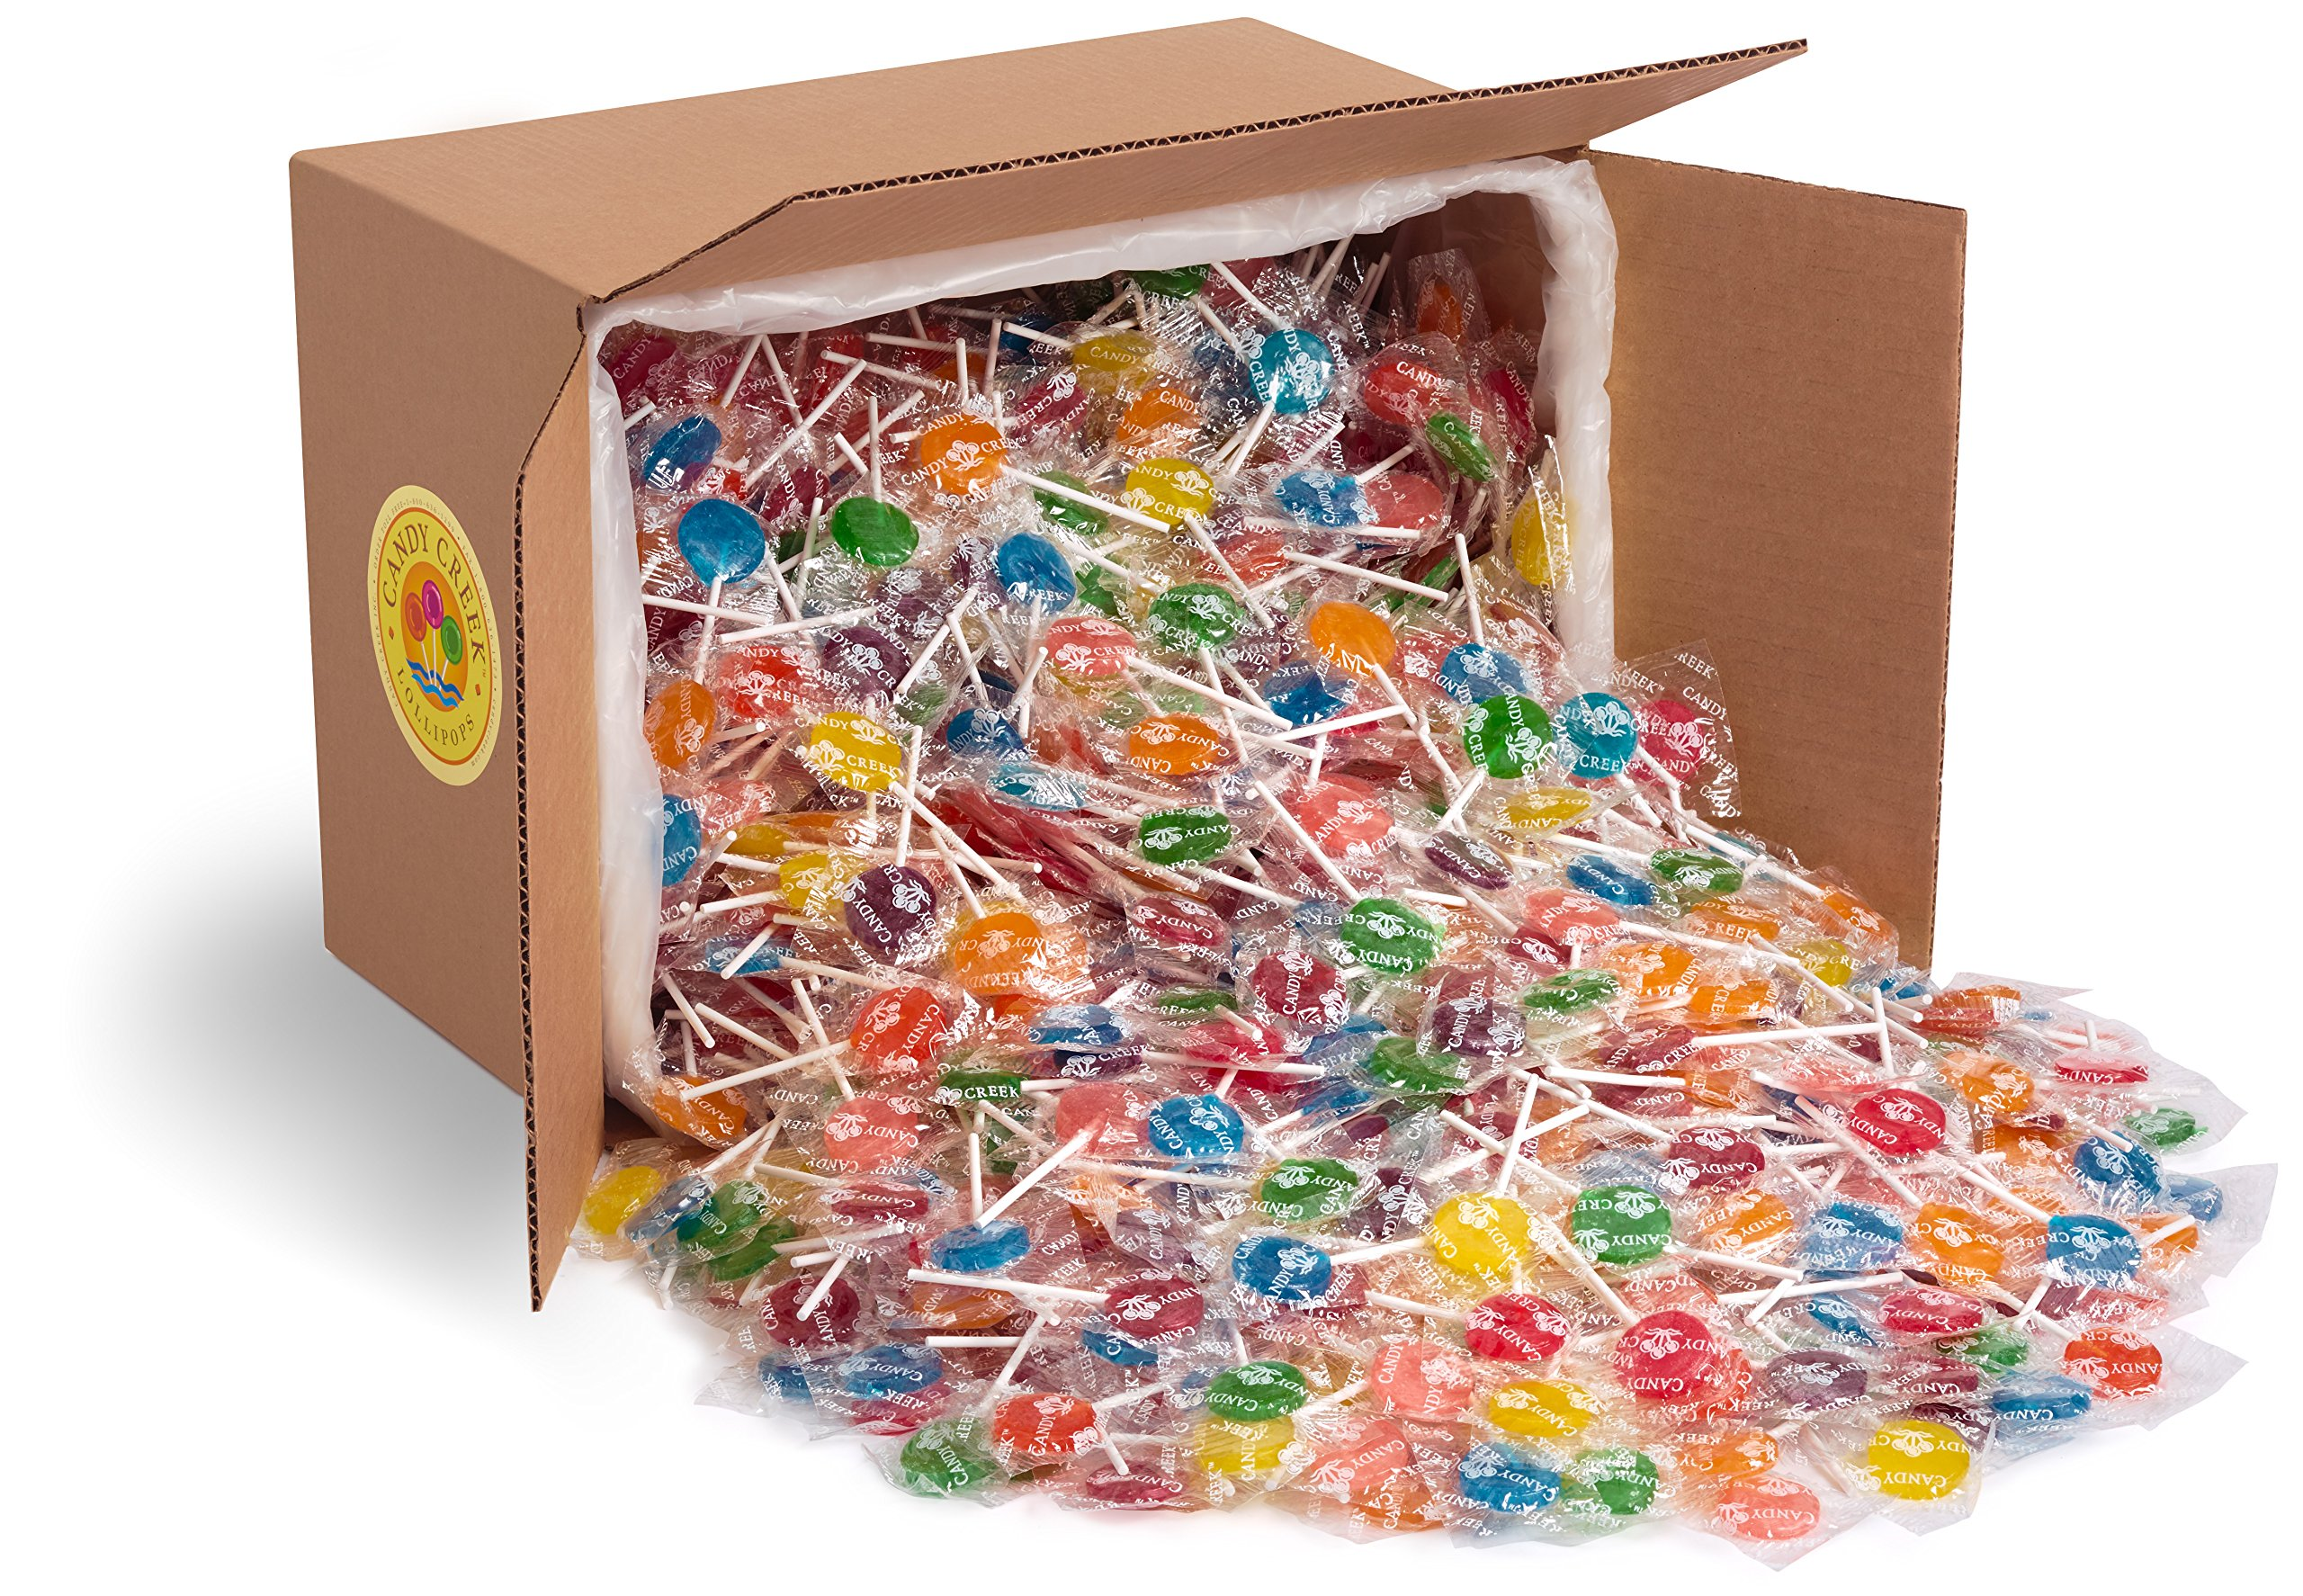 Fruit Lollipops by Candy Creek, Bulk 18 lb. Carton, No Rootbeer, Assorted Flavors by Candy Creek Lollipops